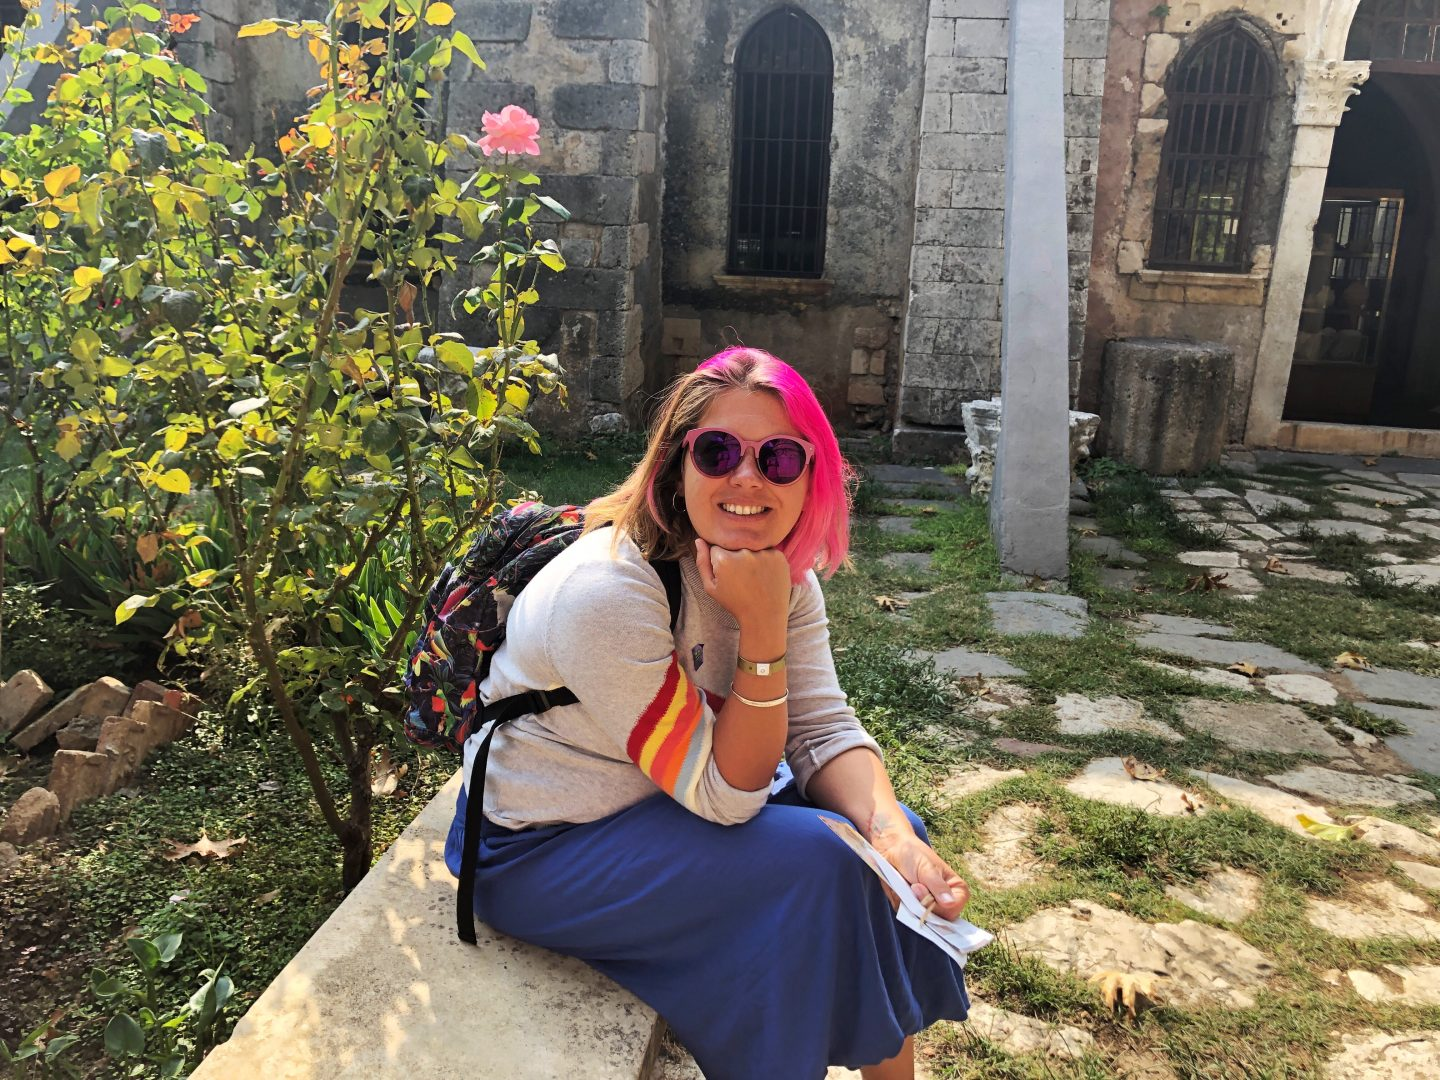 A photo of me, looking at the camera and smiling at the Chania museum.